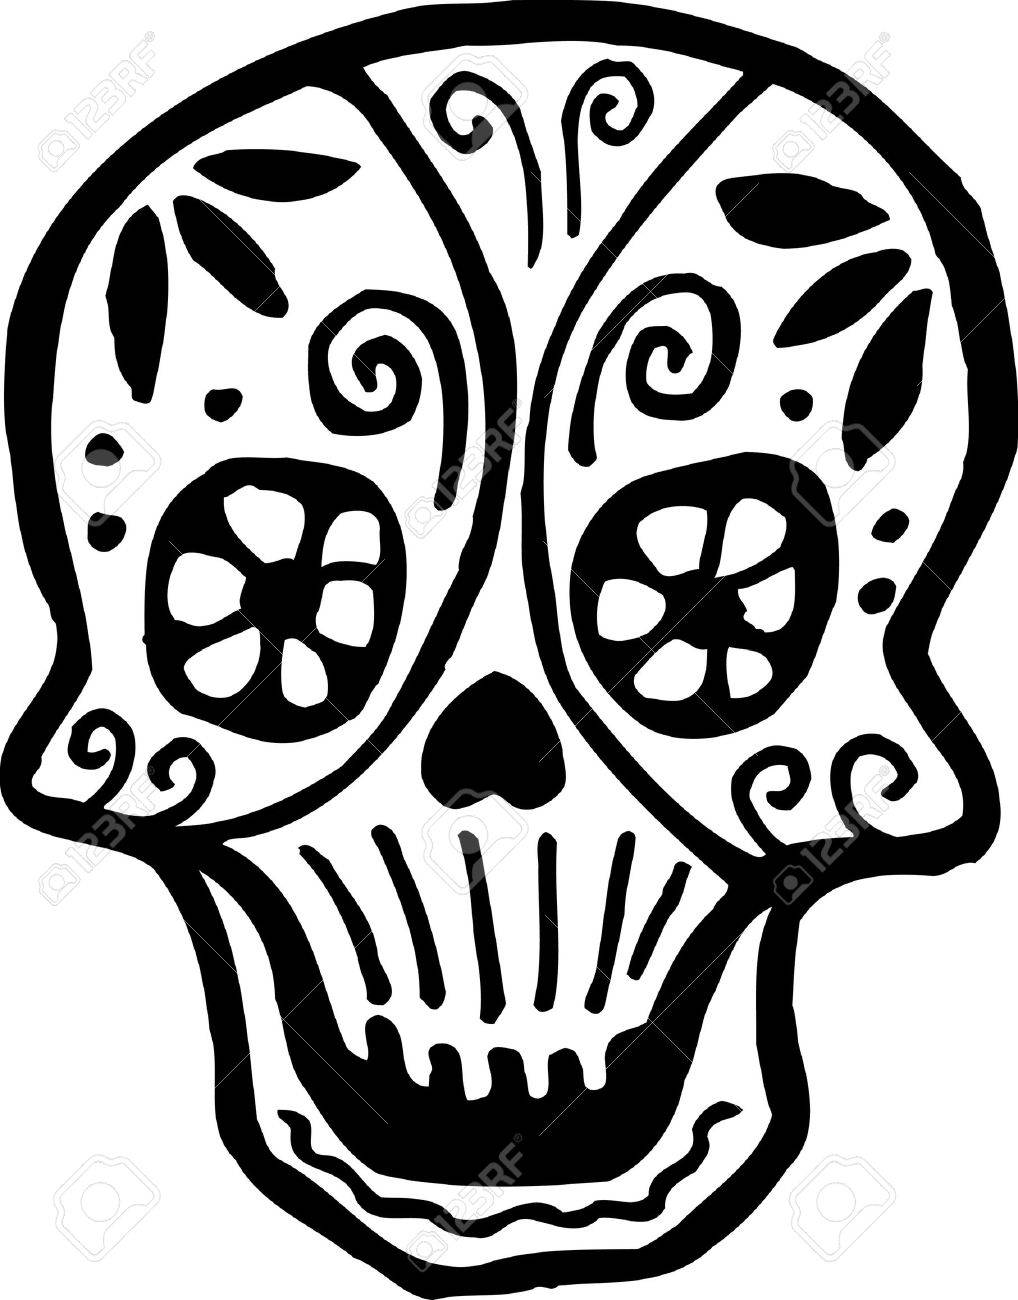 A skull with flowers drawn in black and white Stock Photo - 14865132